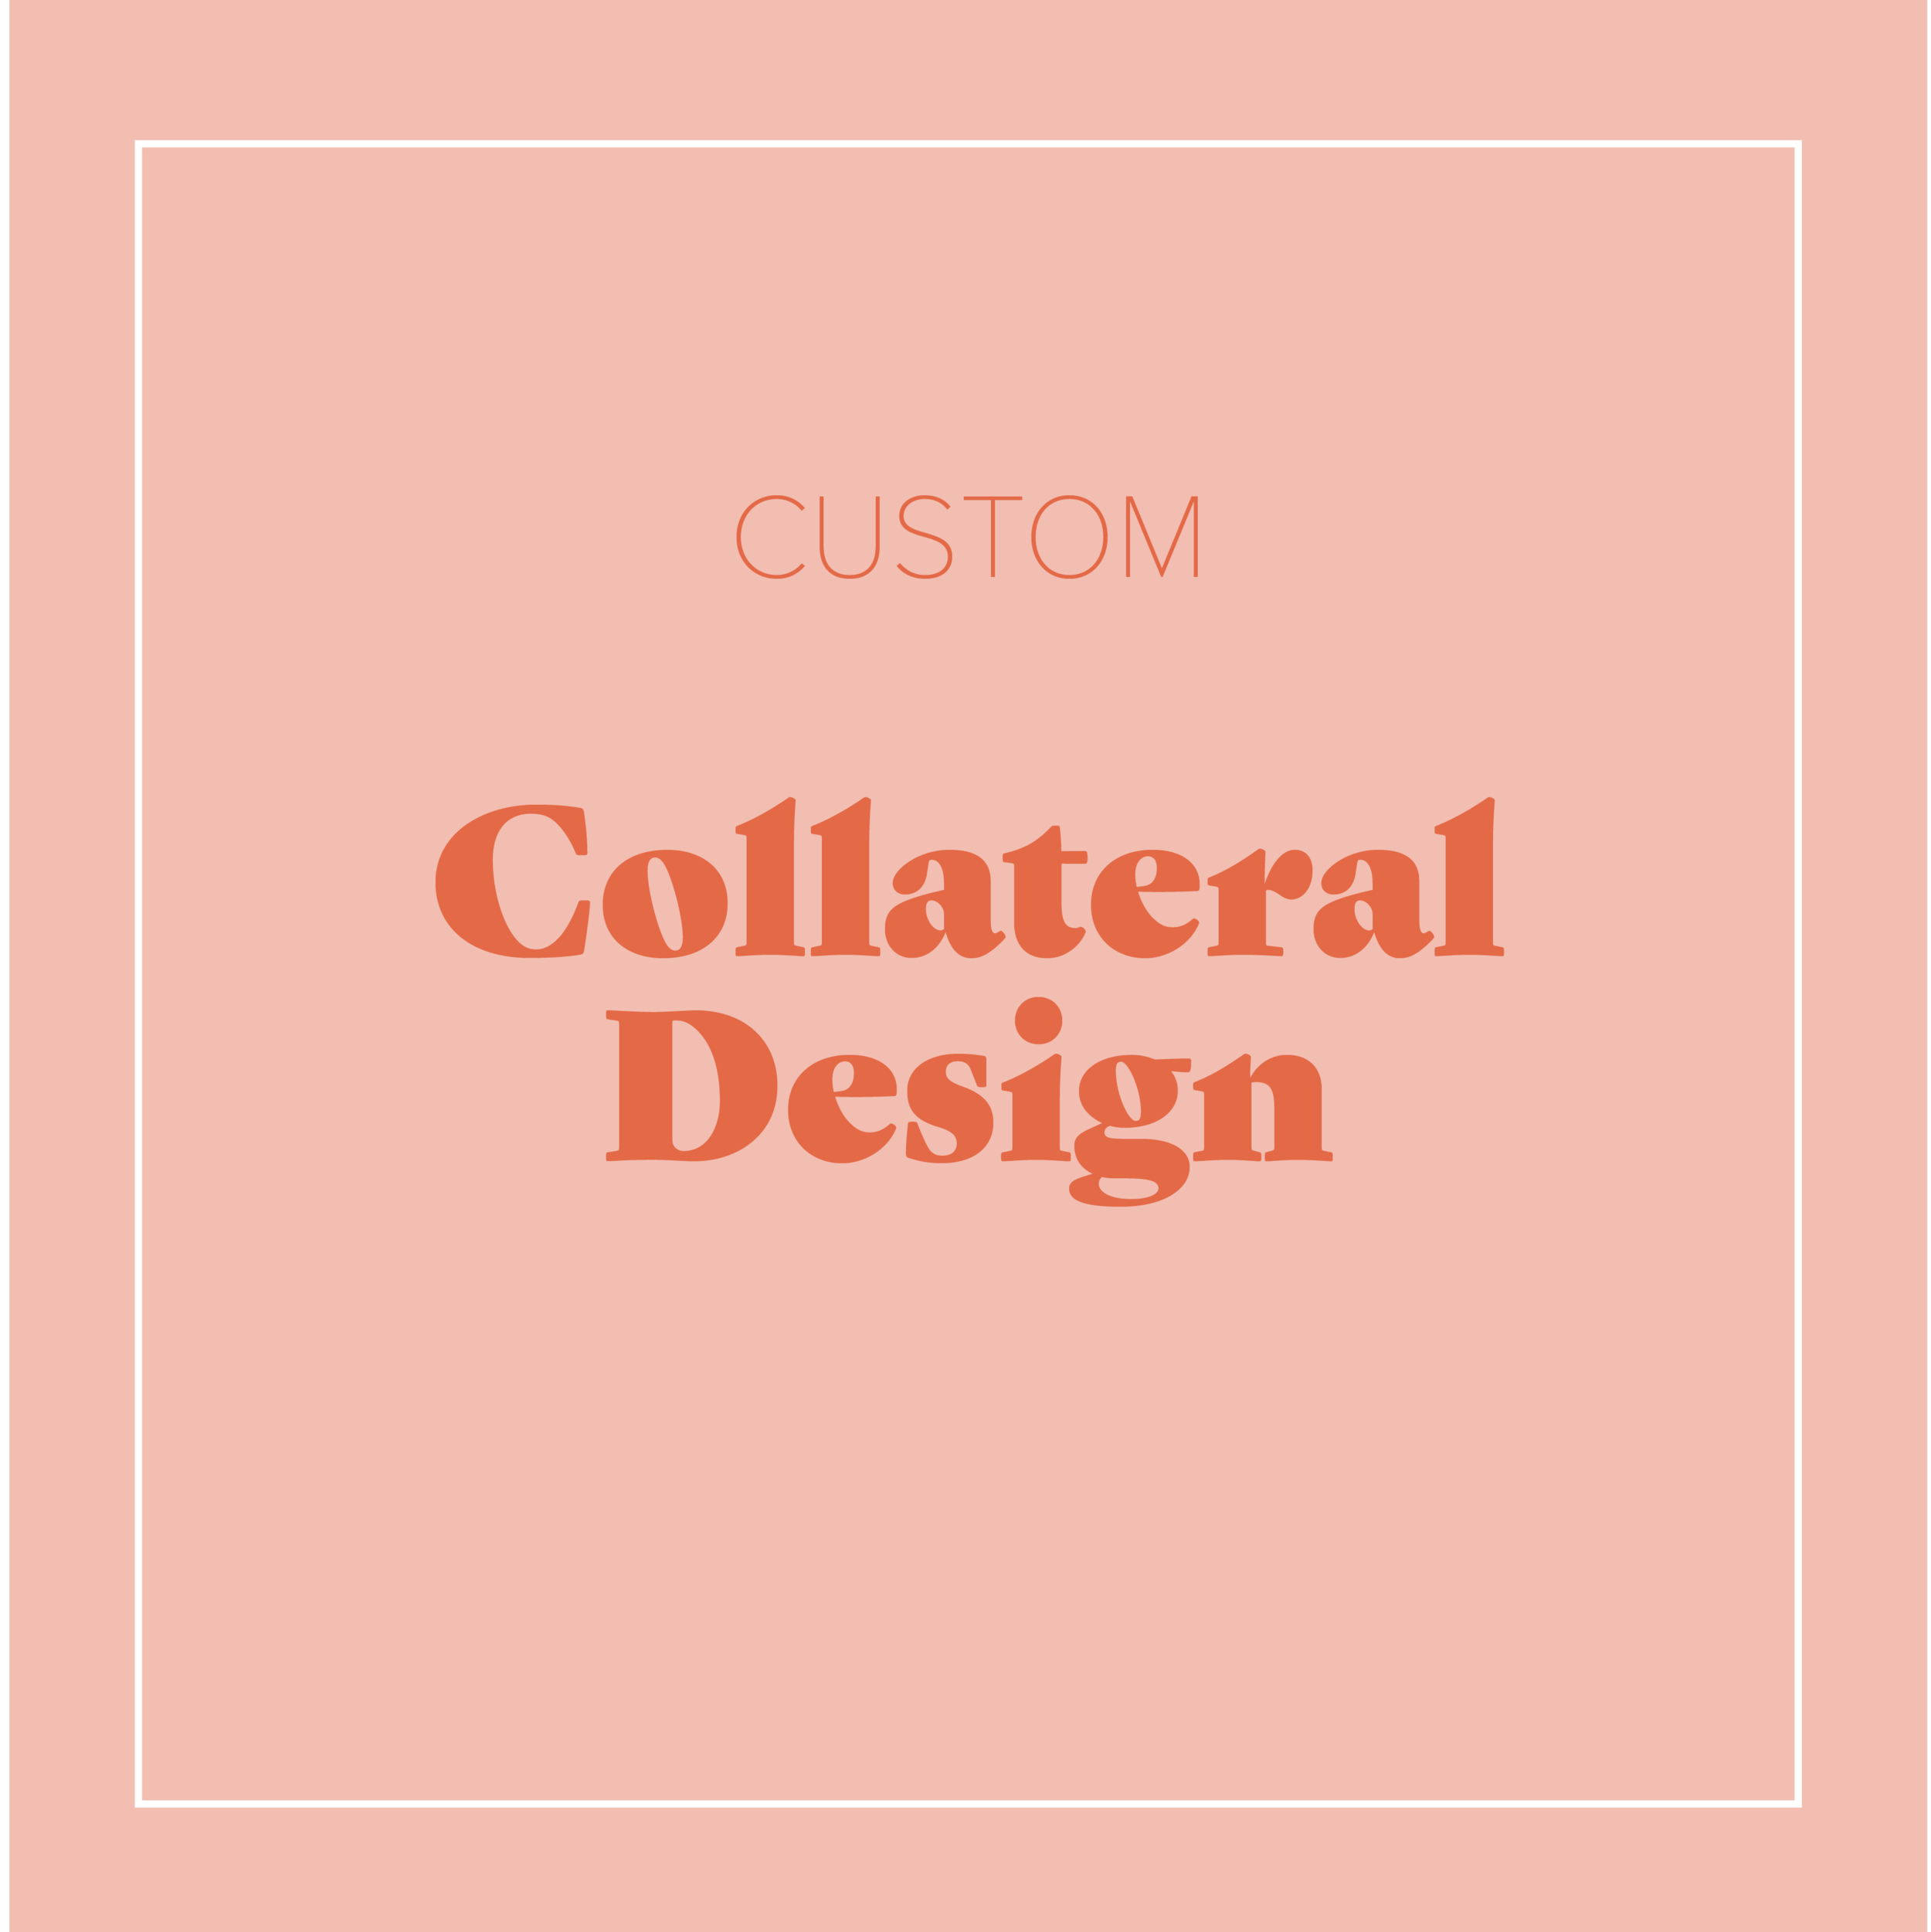 003_collateraldesign_stacyaguilar.png